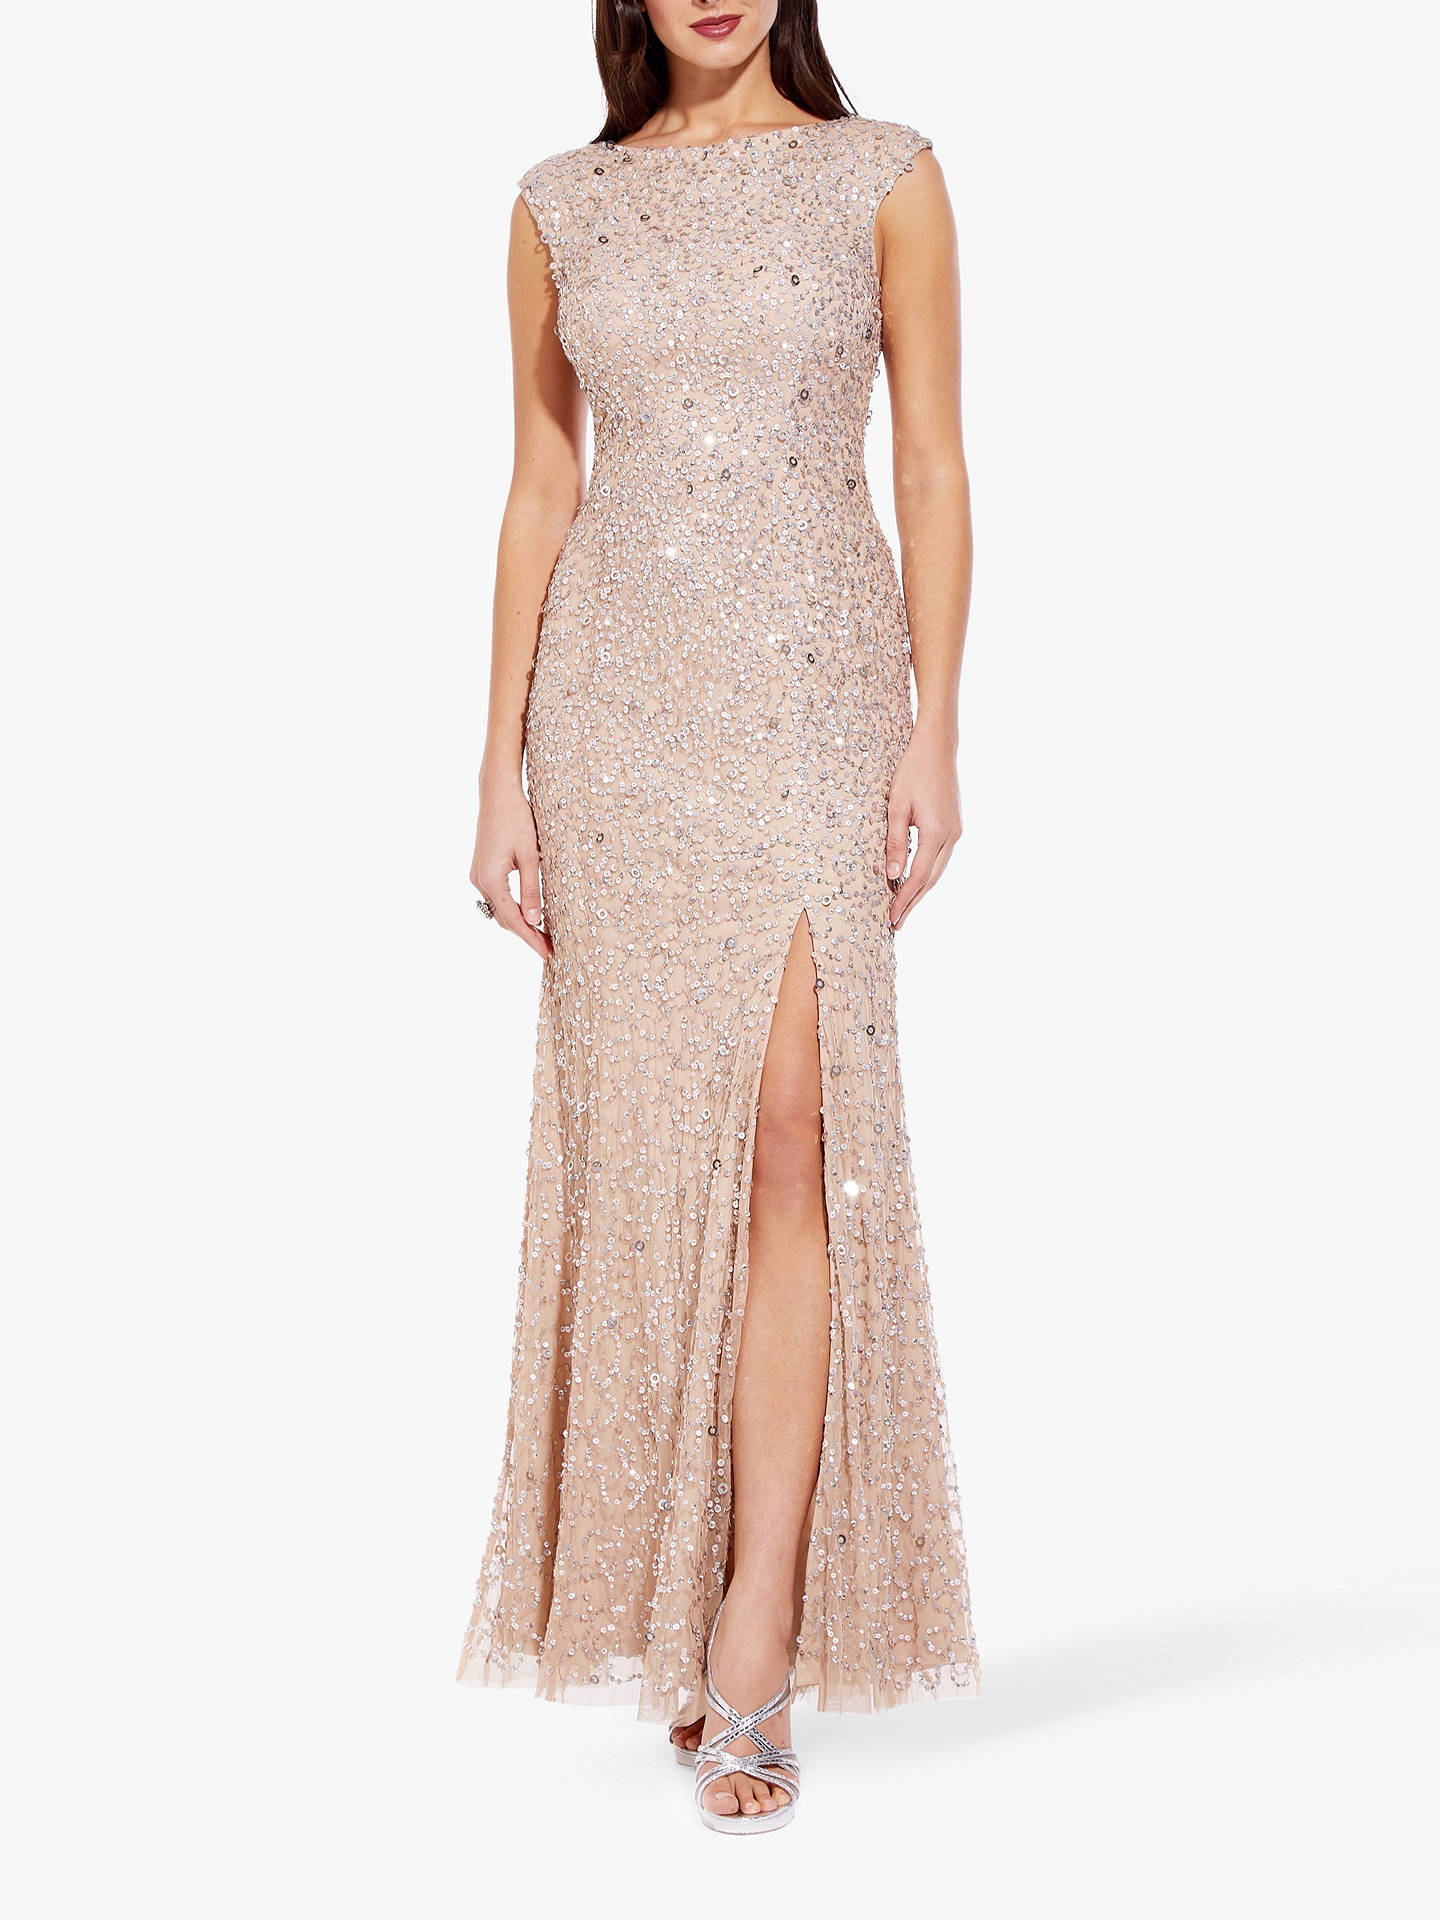 6b2ecb5a1d4ac Adrianna Papell Cap Sleeve Sequin Dress, Champagne at John Lewis ...